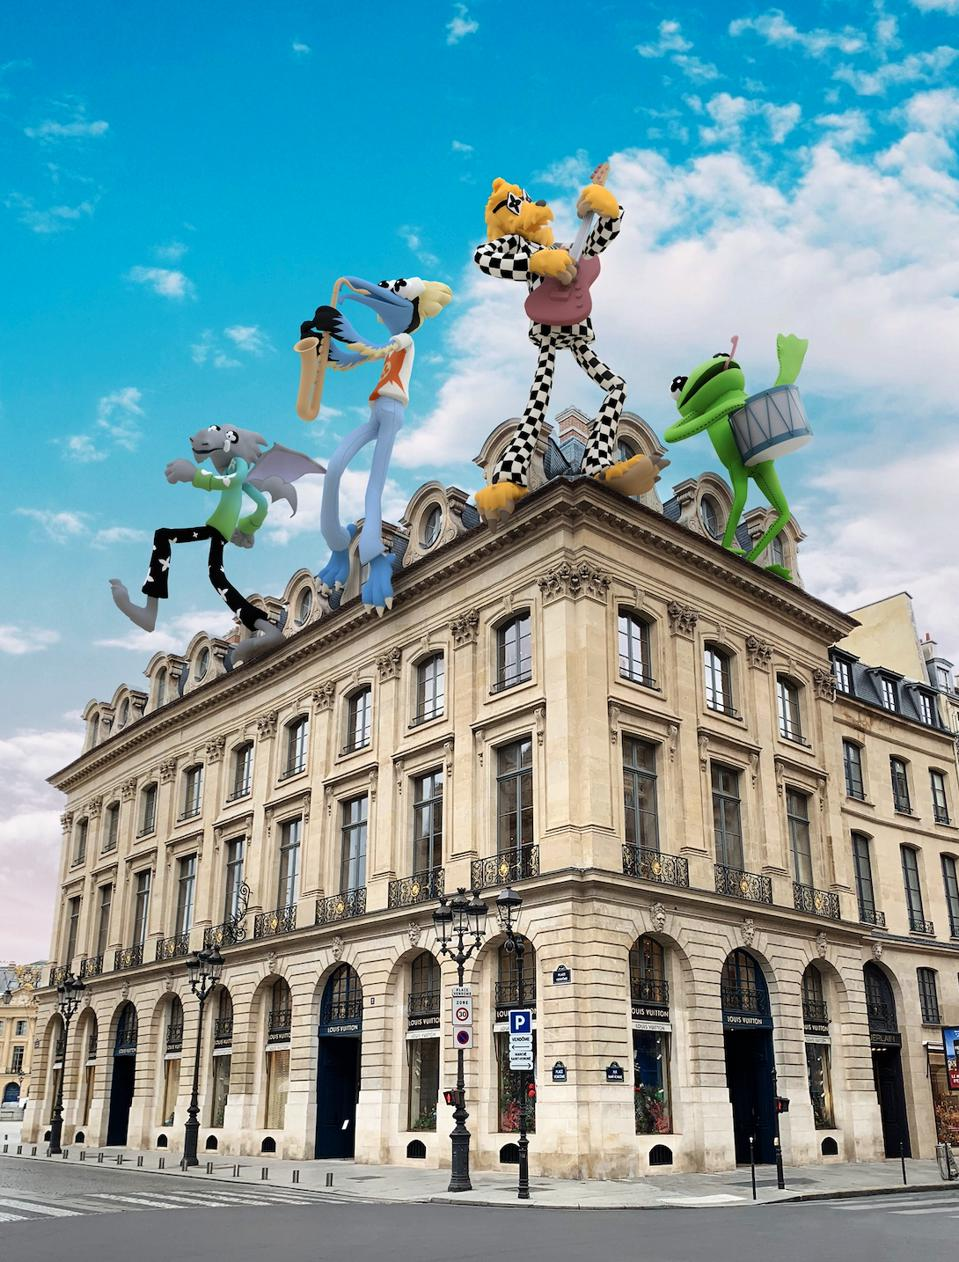 Cartoon characters imposed on facade of the Louis Vuitton Place Vendome Store.